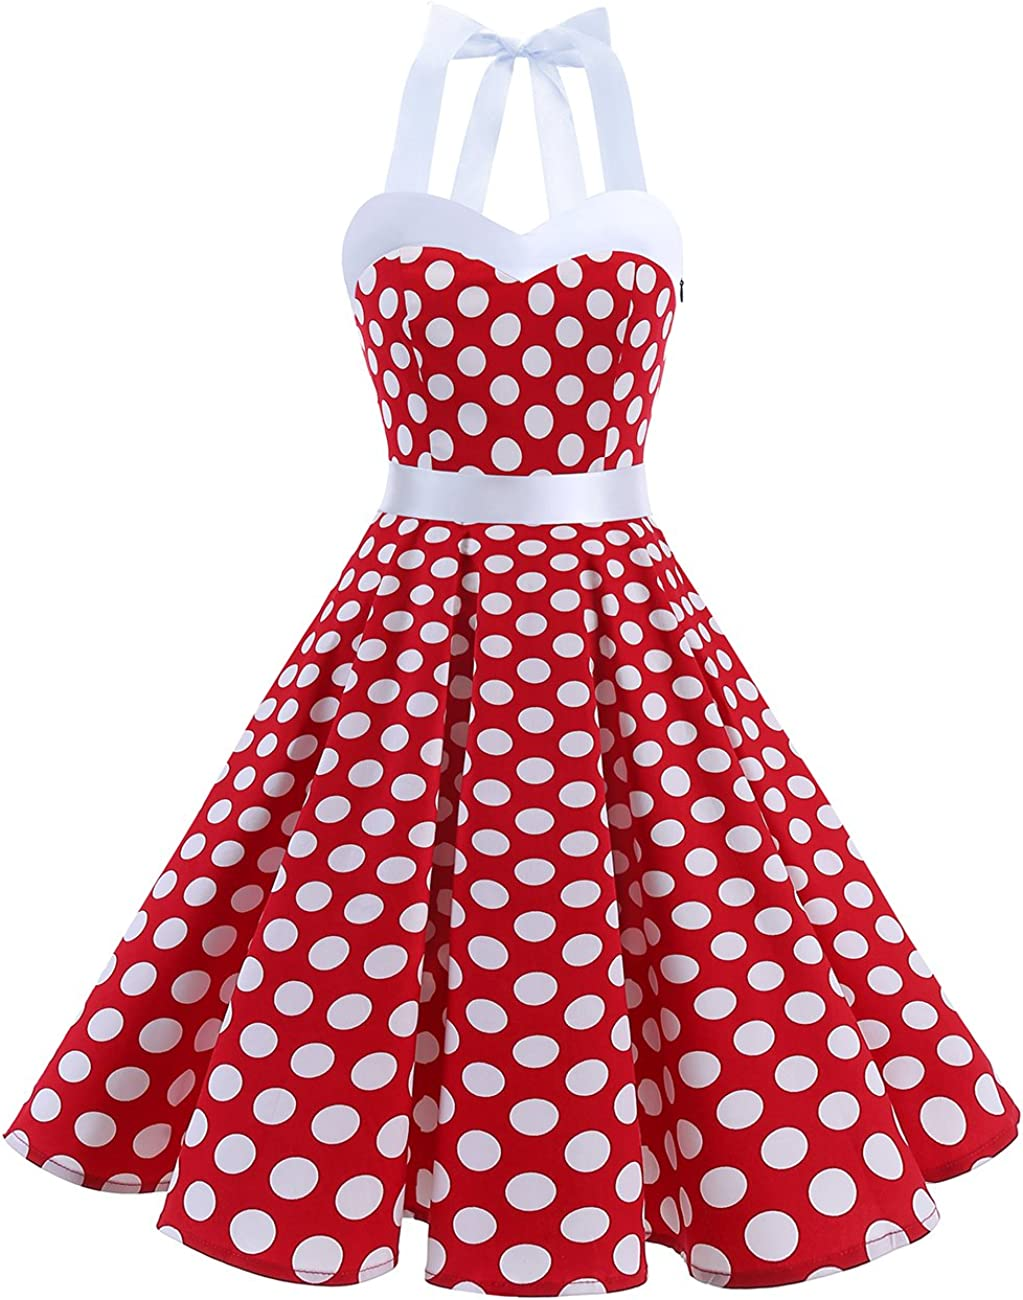 TALLA 3XL. DRESSTELLS® Halter 50s Rockabilly Polka Dots Audrey Dress Retro Cocktail Dress Red White Dot 3XL